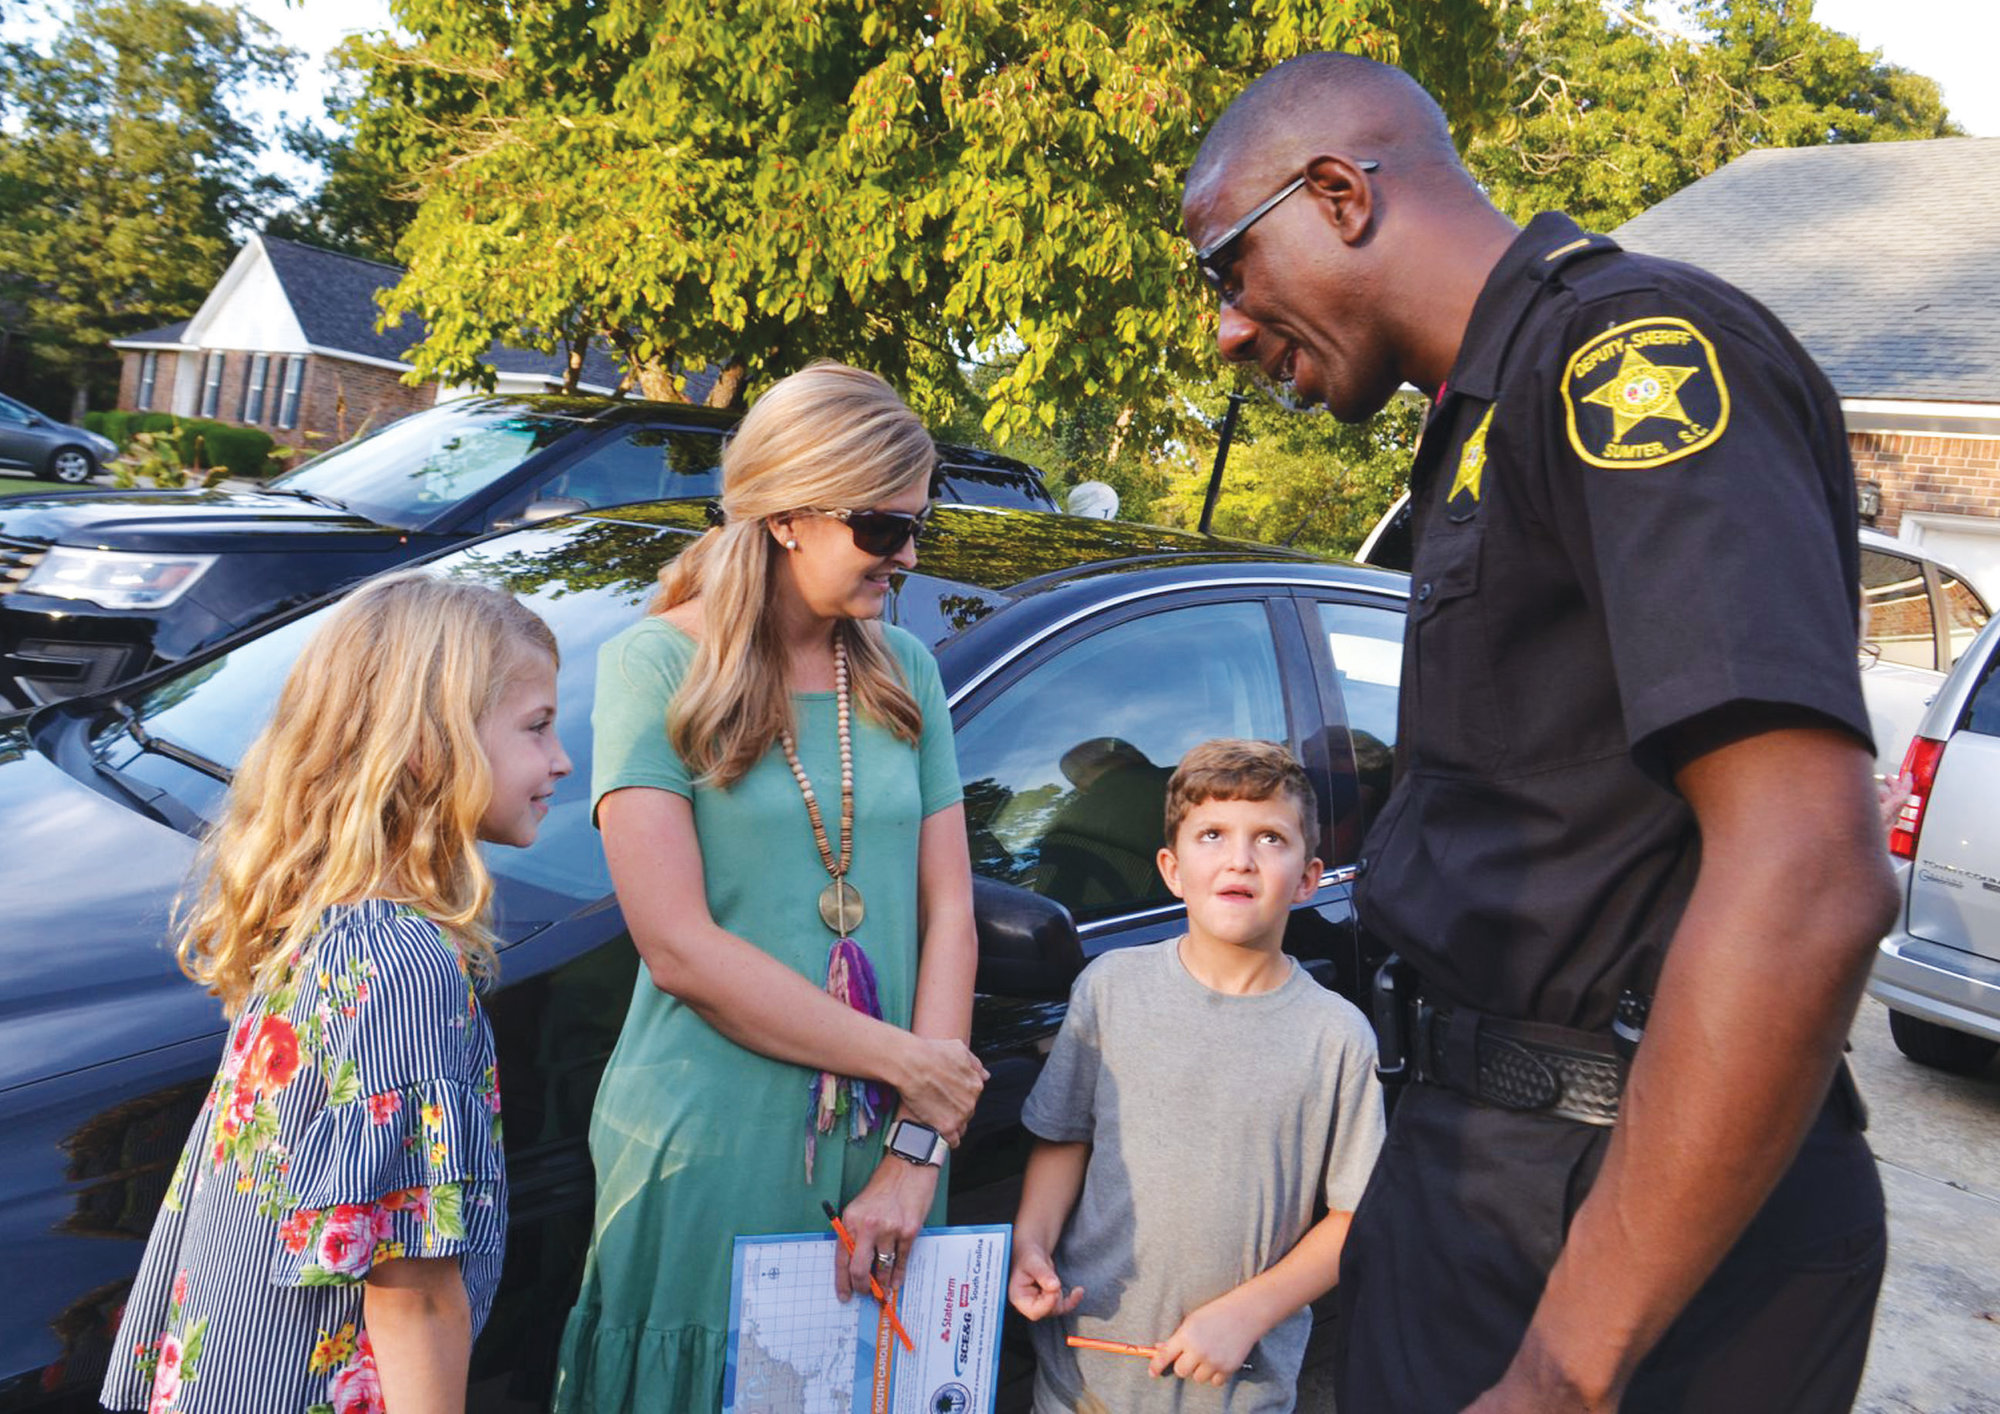 It takes a community: Sumter police, fire departments visit